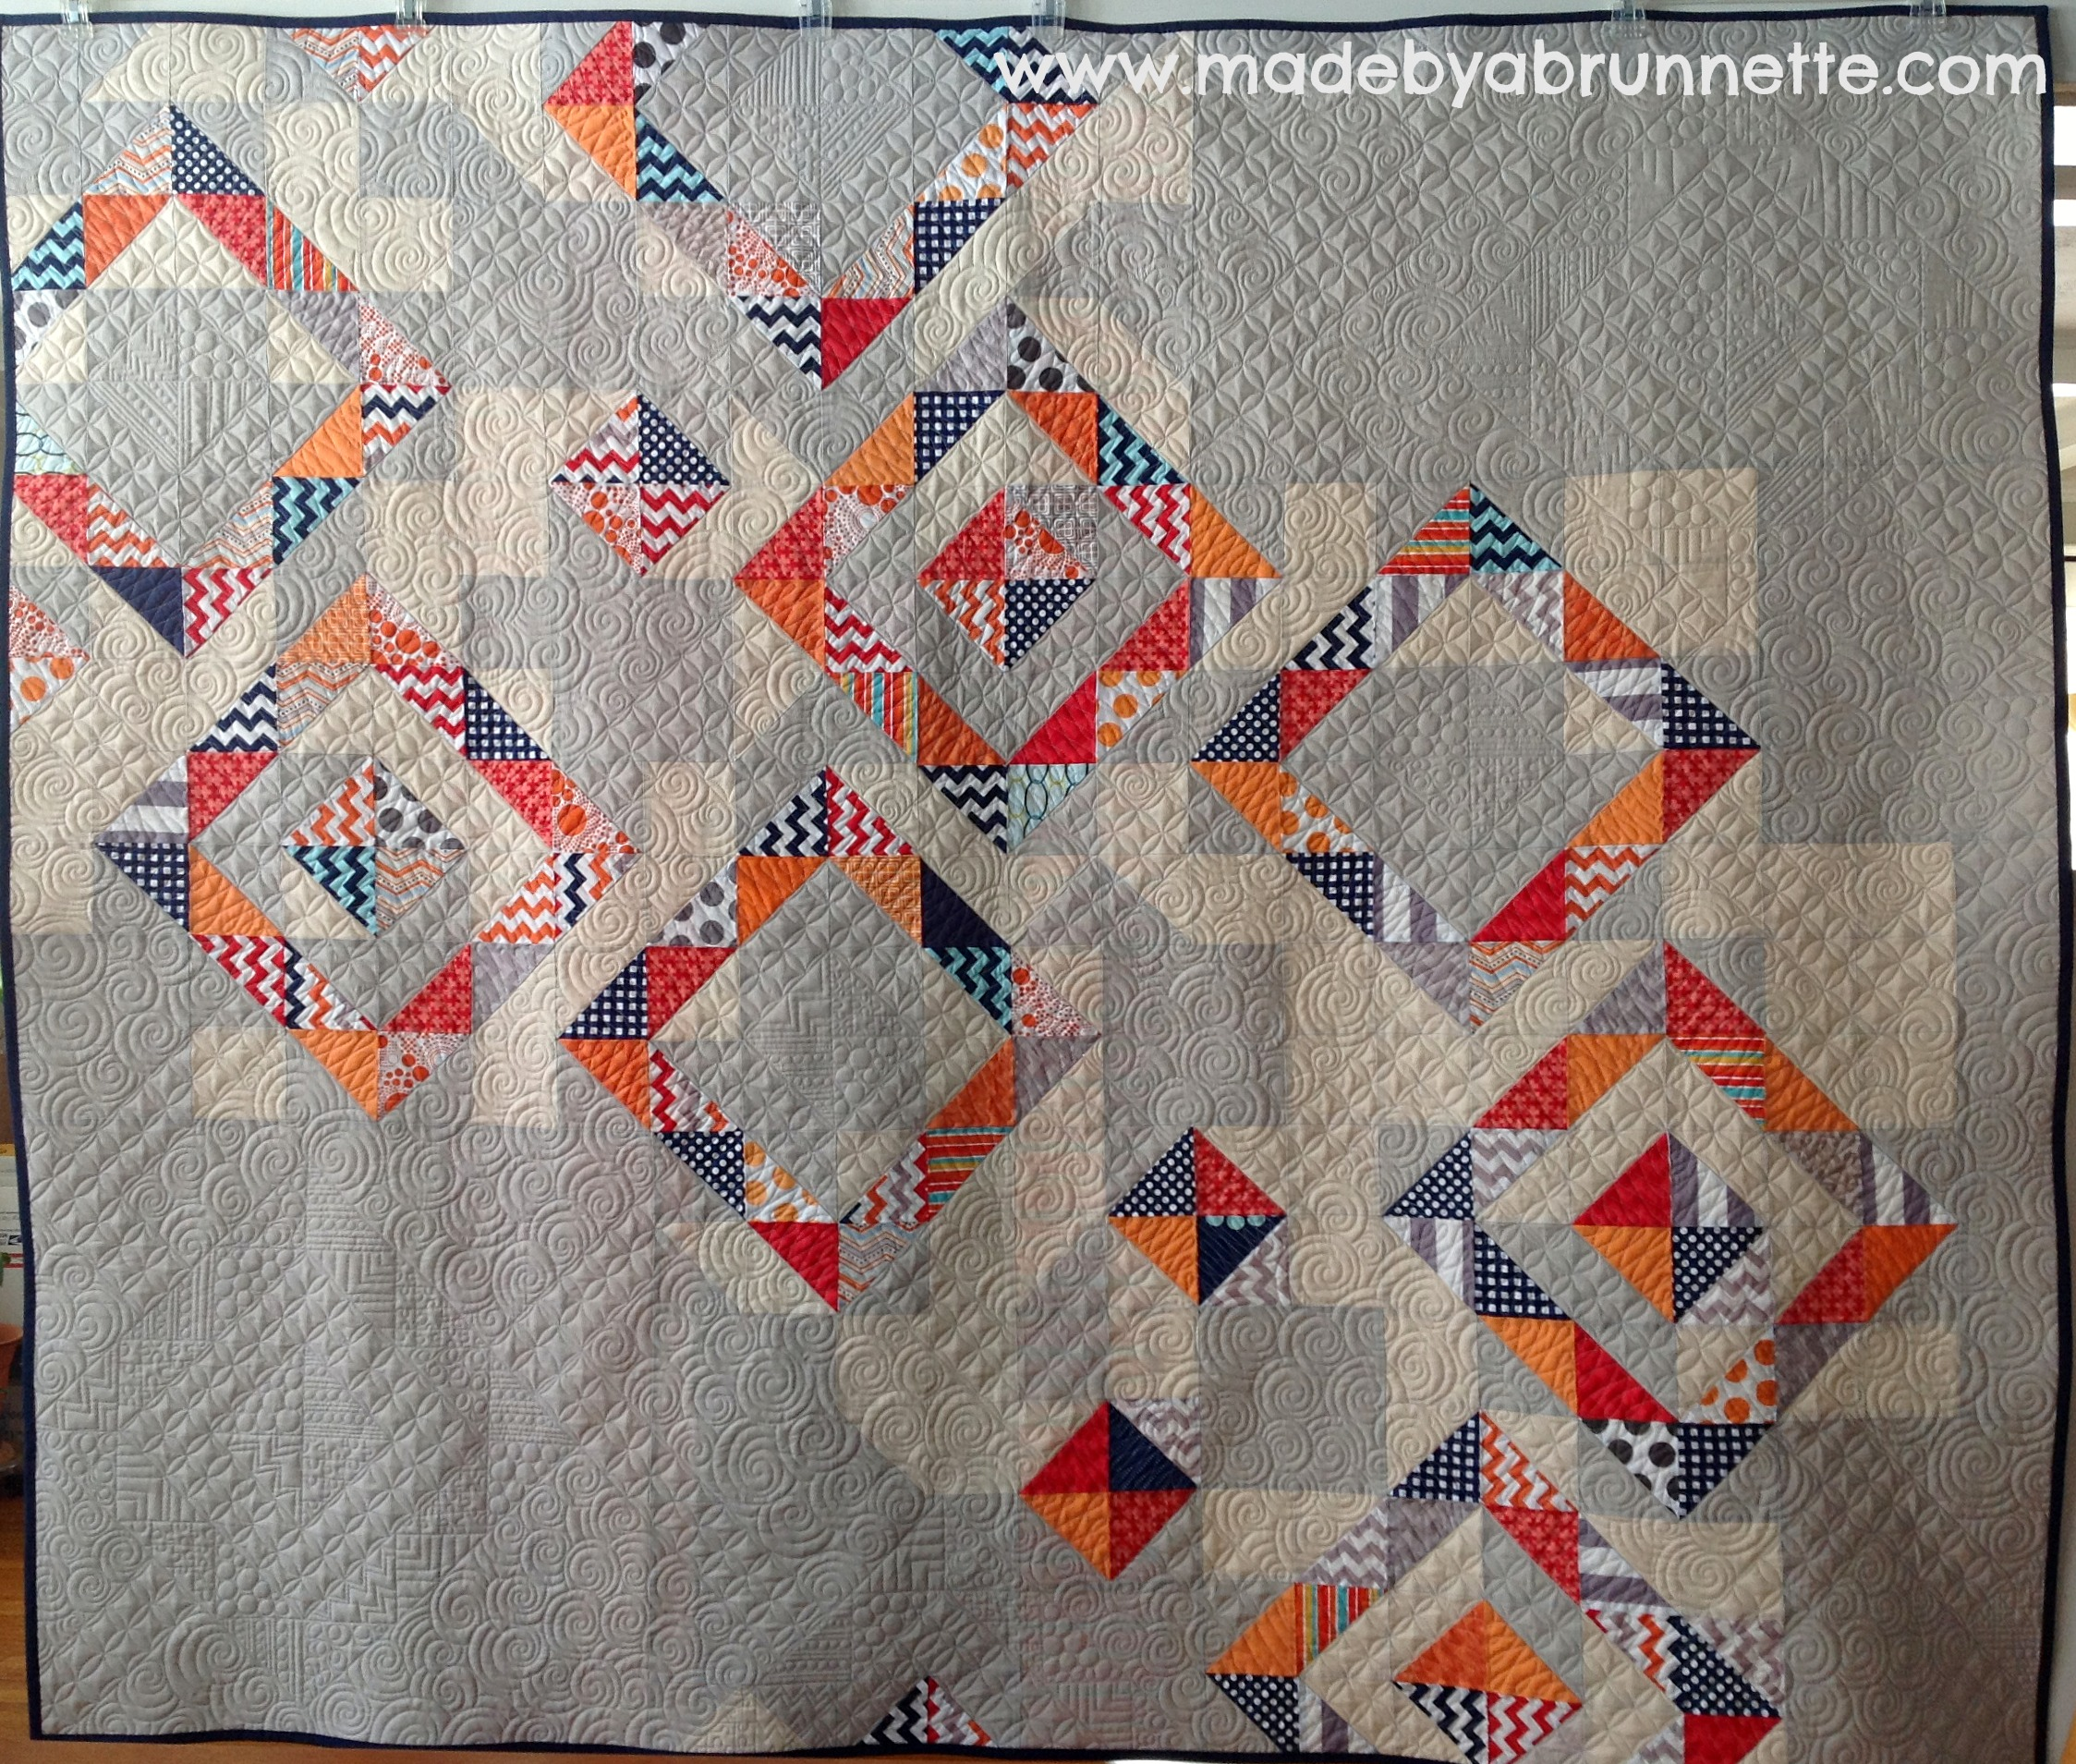 Quilt Guild Demo Ideas : 1000+ images about Quilts on Pinterest Art quilts, Quilt and Quilting